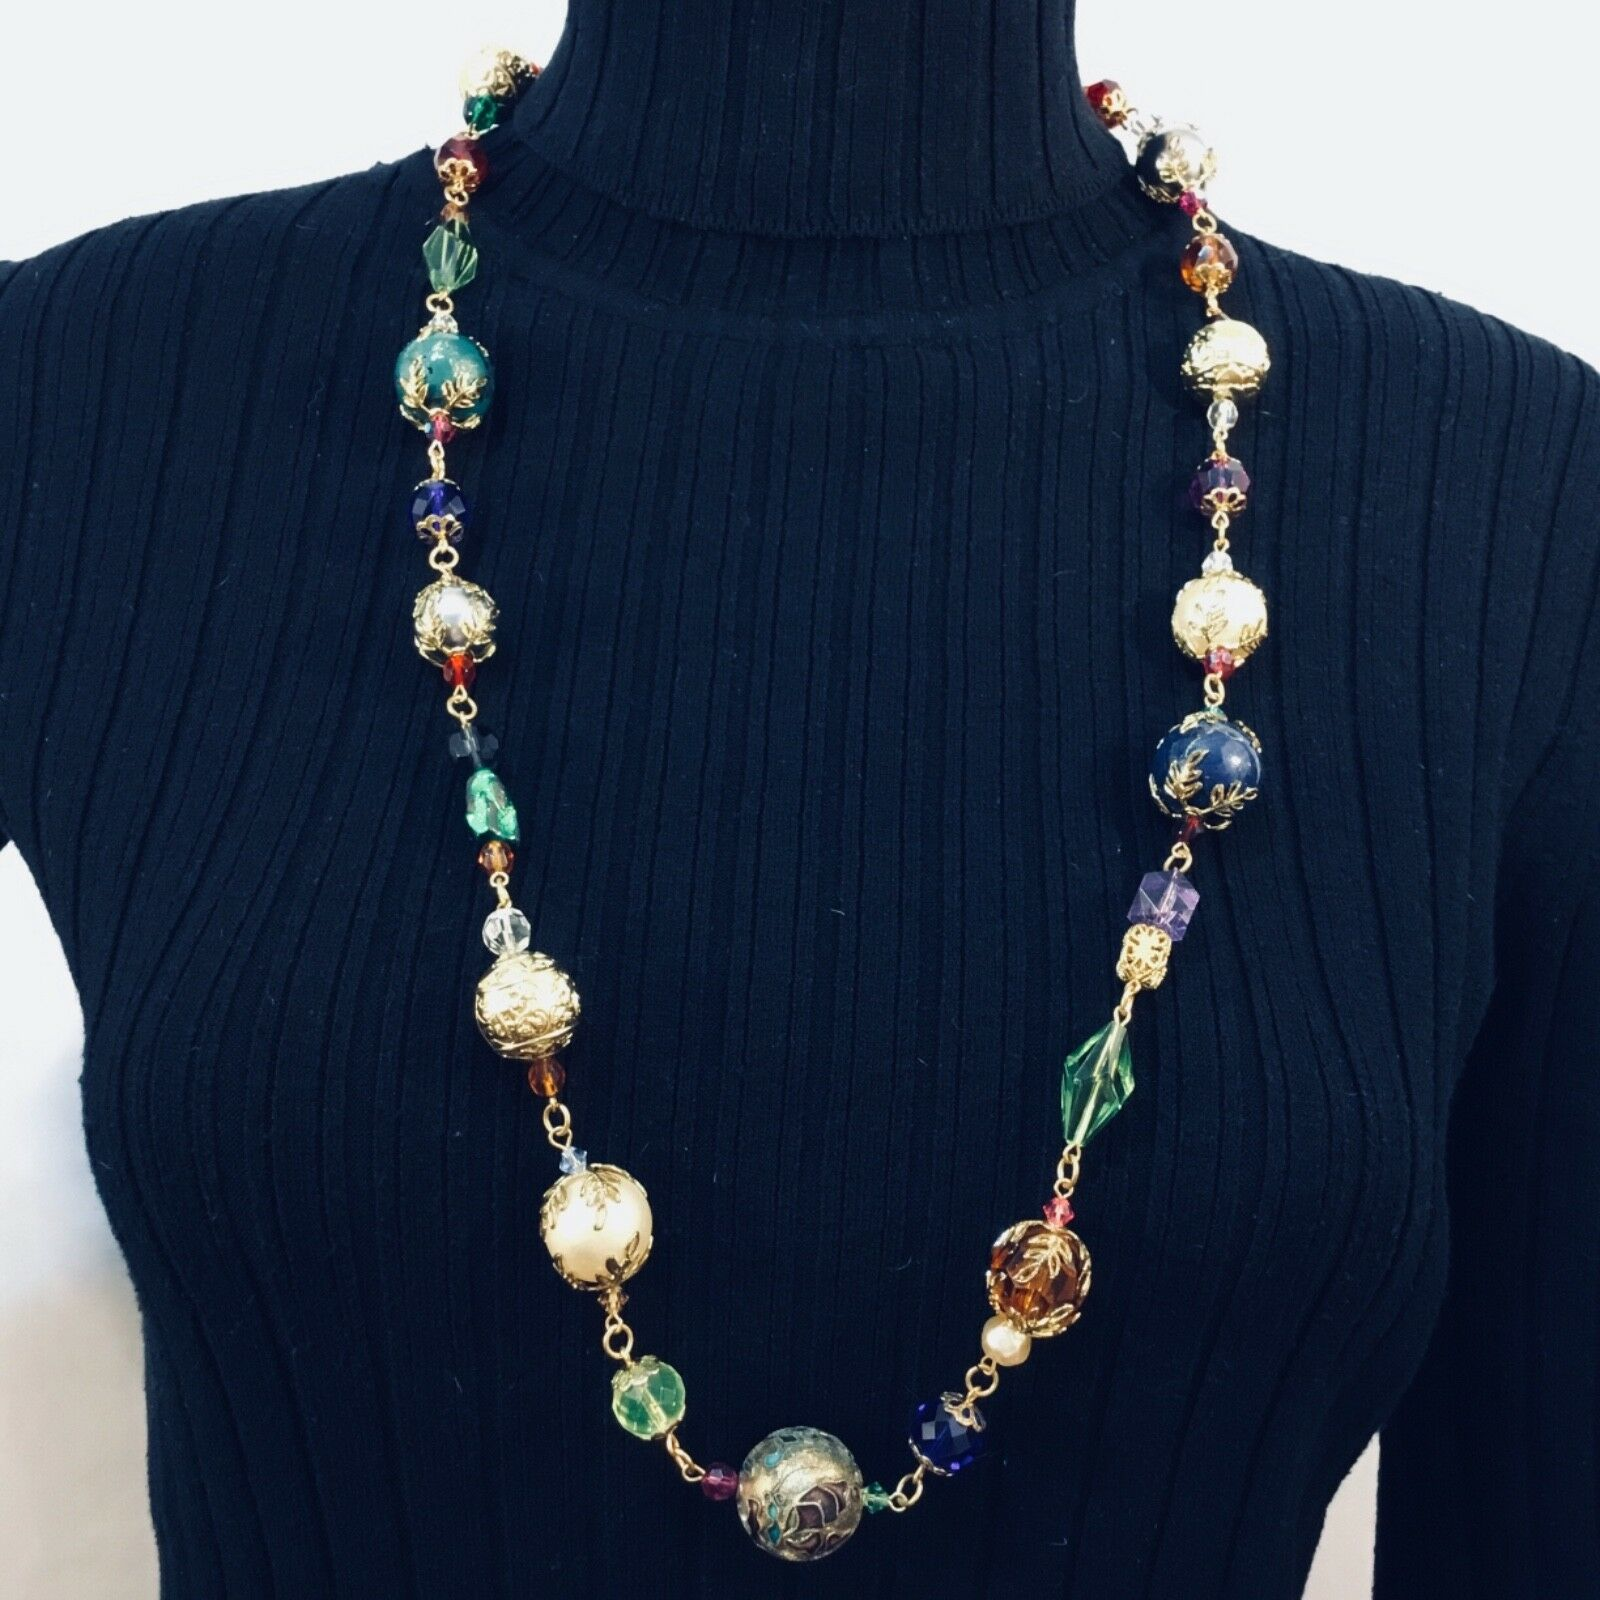 Art.3075 Appealing multi strands old Venetian necklace made of amber and milky white  of small seed glass beads